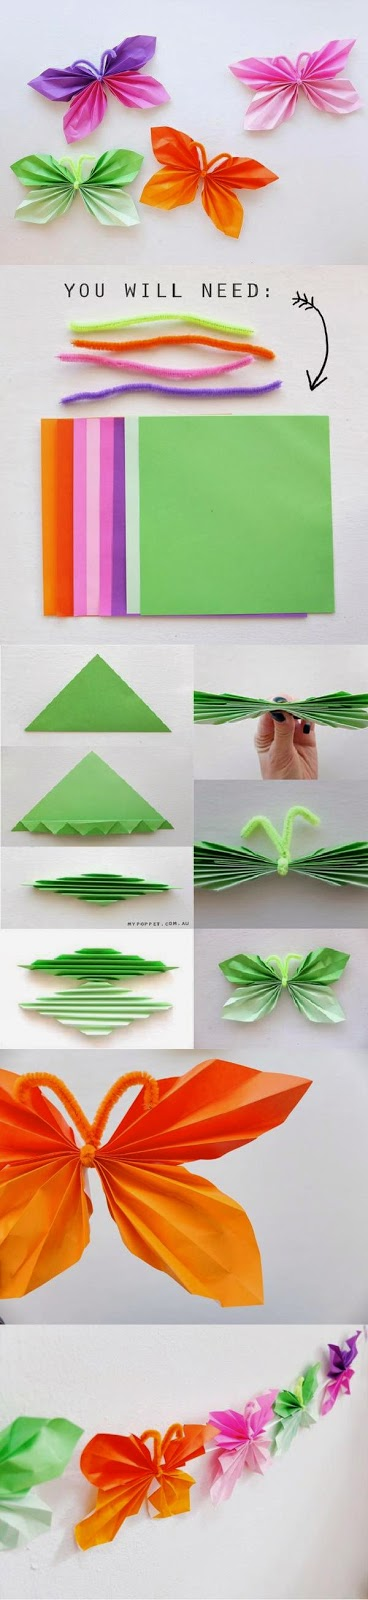 Tutoriales y DIYs: Mariposas de papel